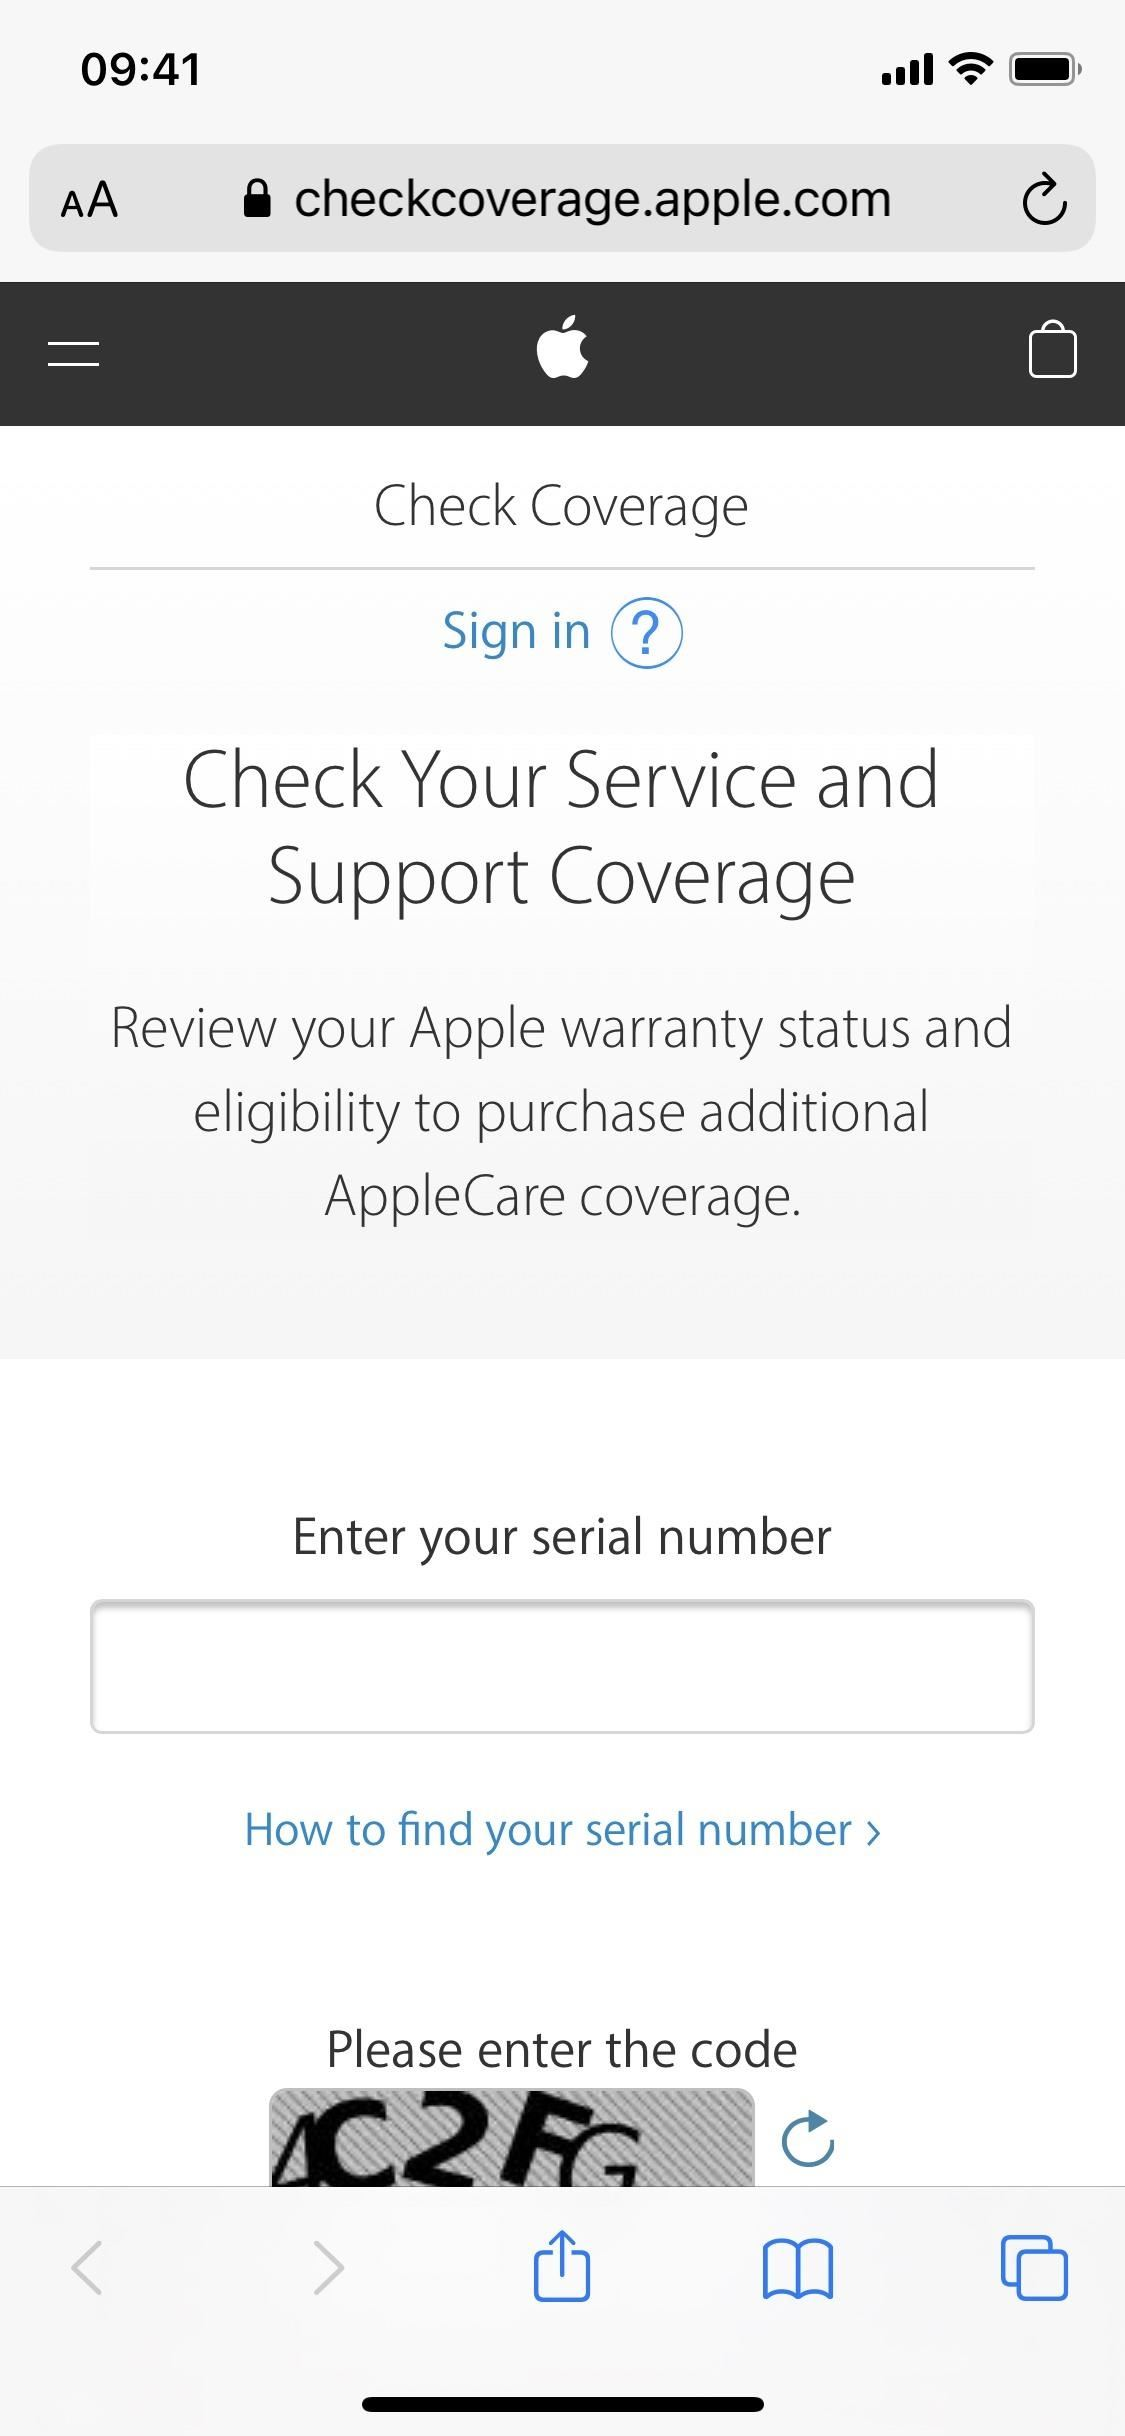 How to Quickly Check if Your iPhone Is Still Covered by Apple's Warranty or AppleCare